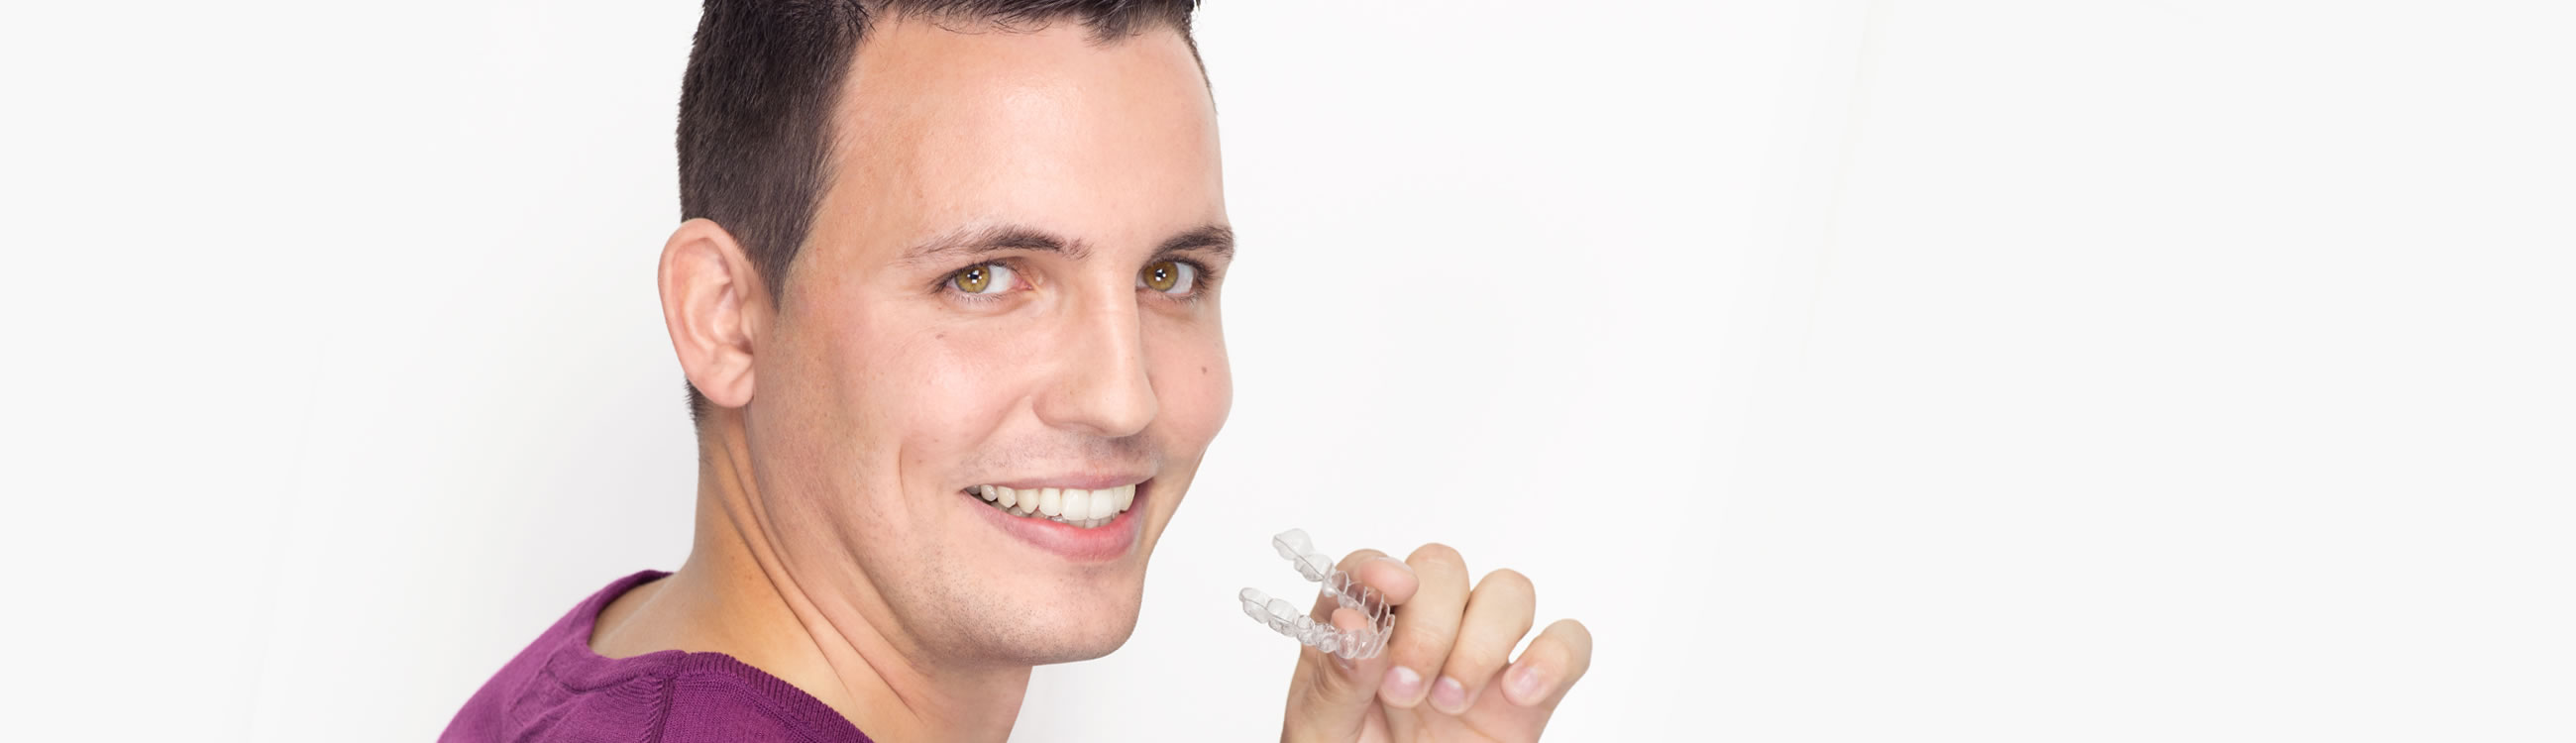 Invisalign Lite braces in Bracknell